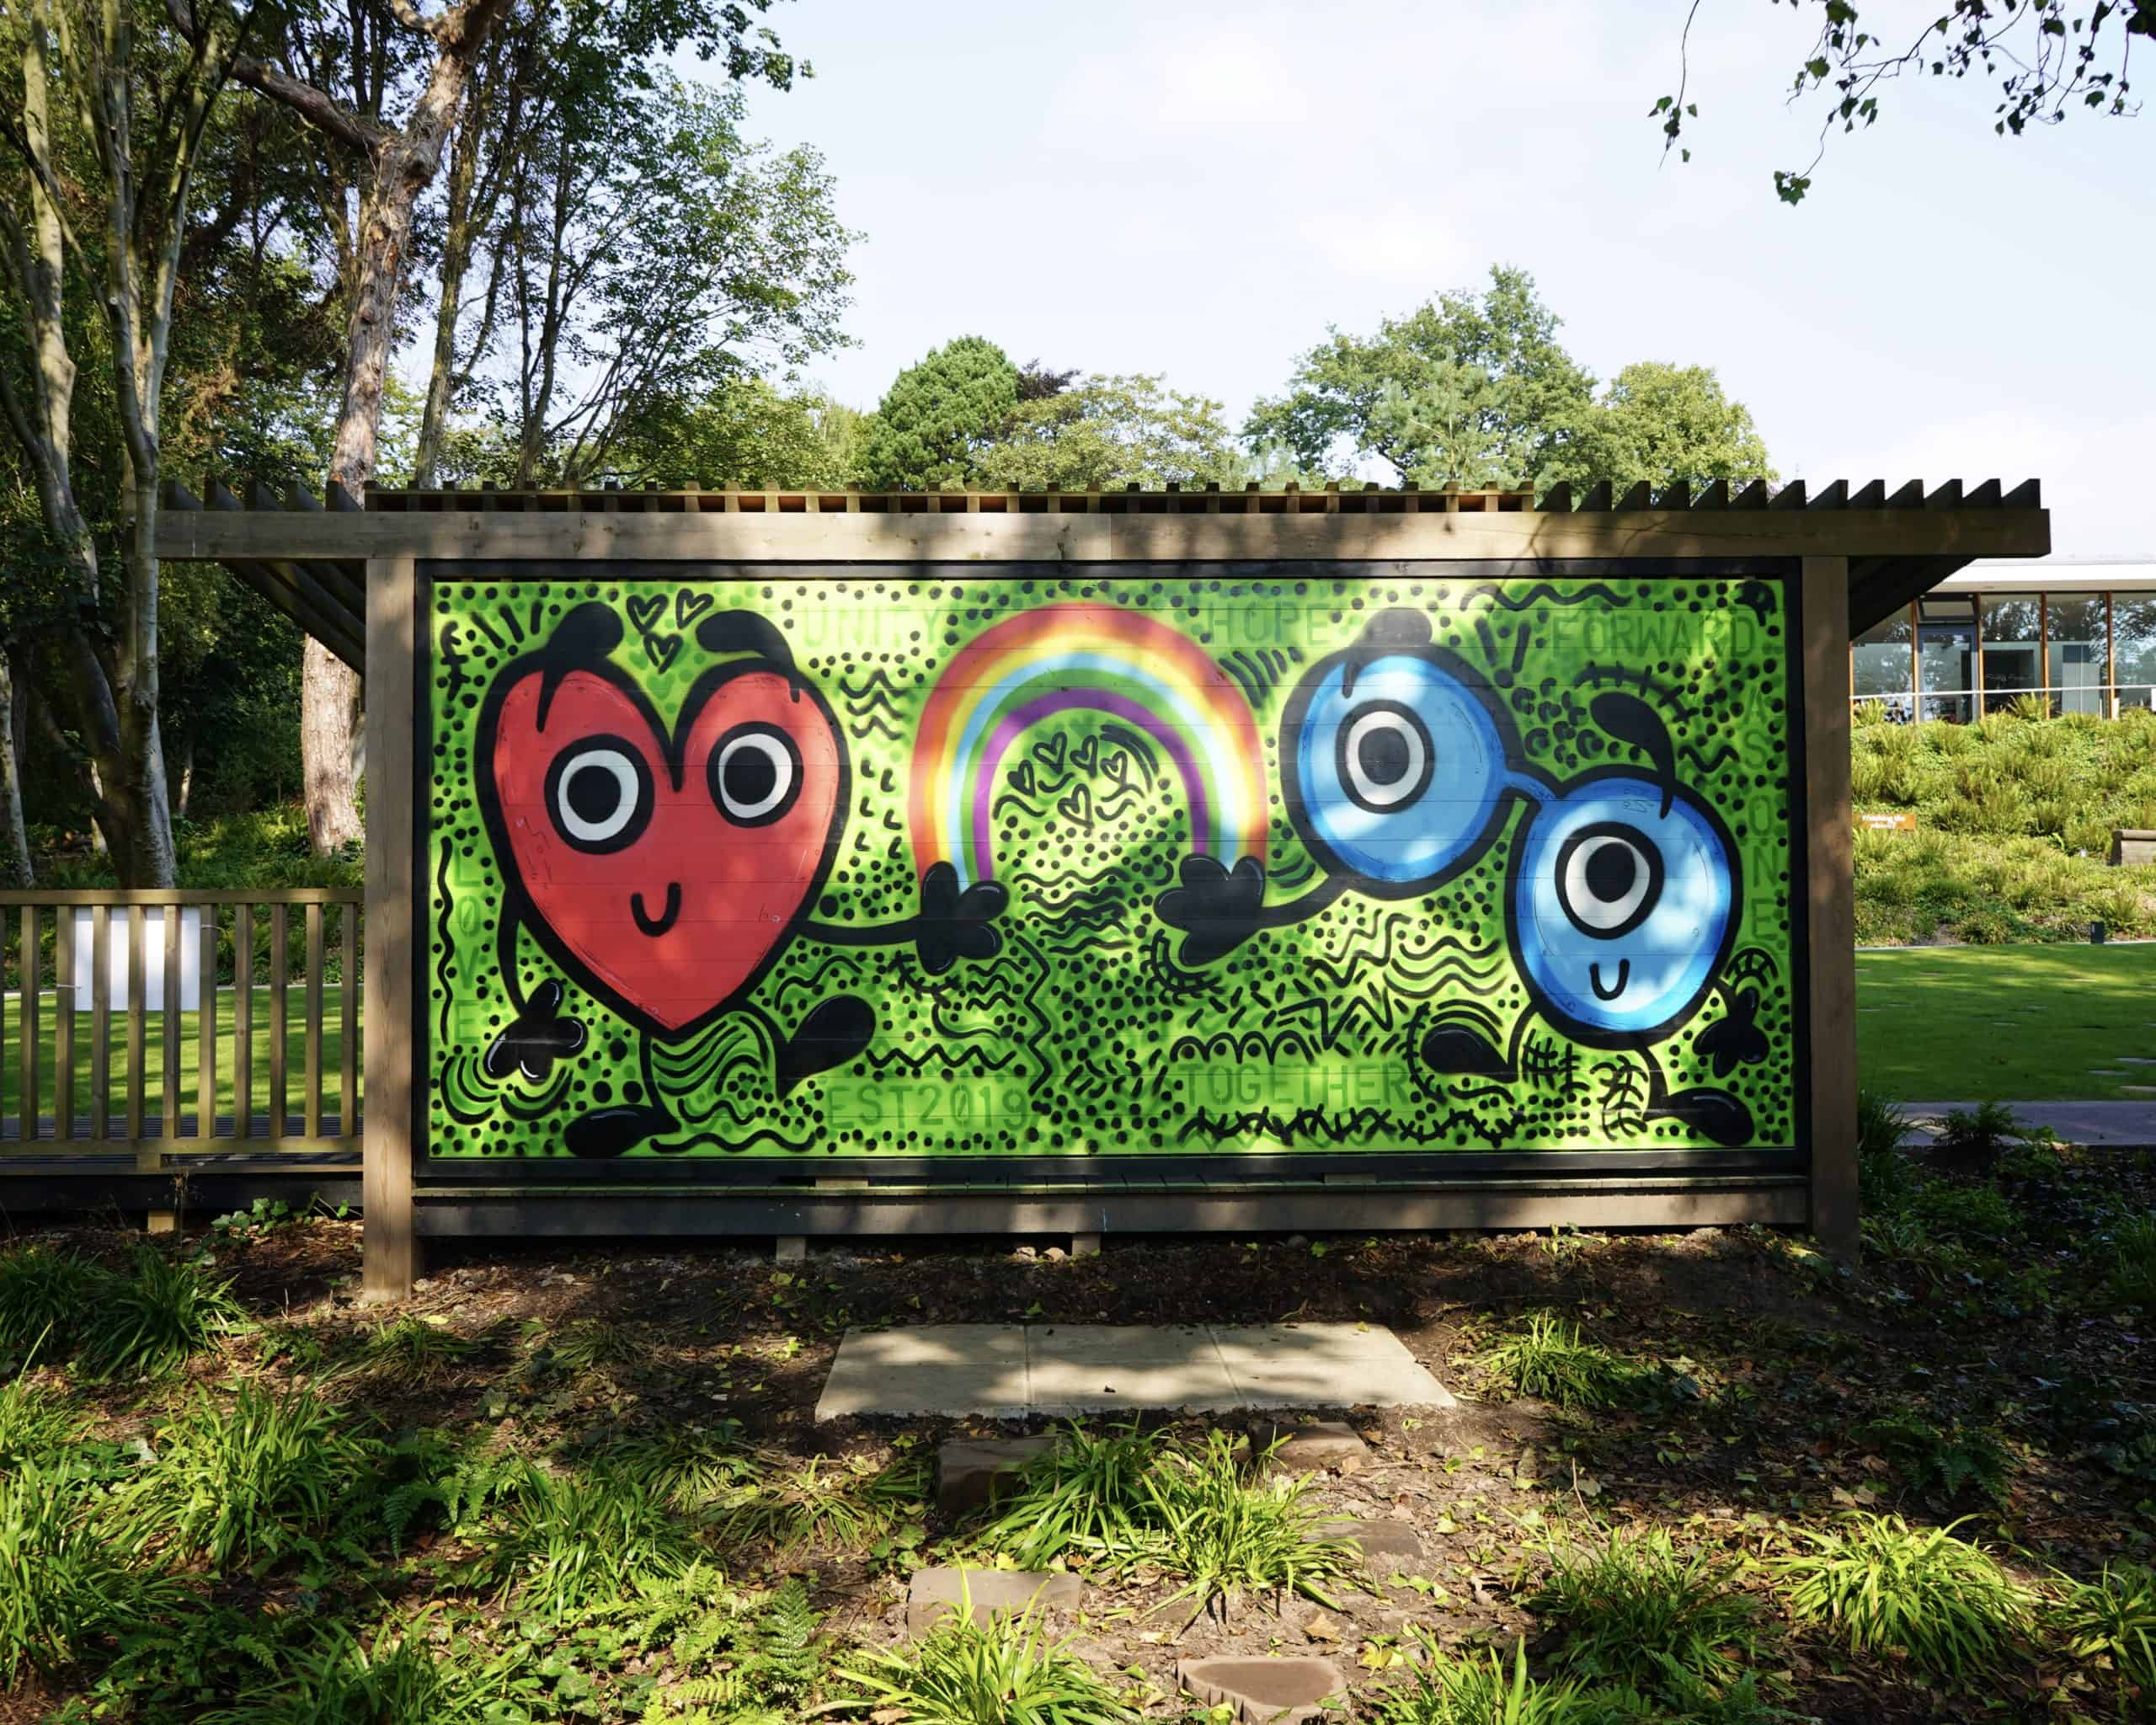 Sean Webster new artwork revealed at Strawberry Field